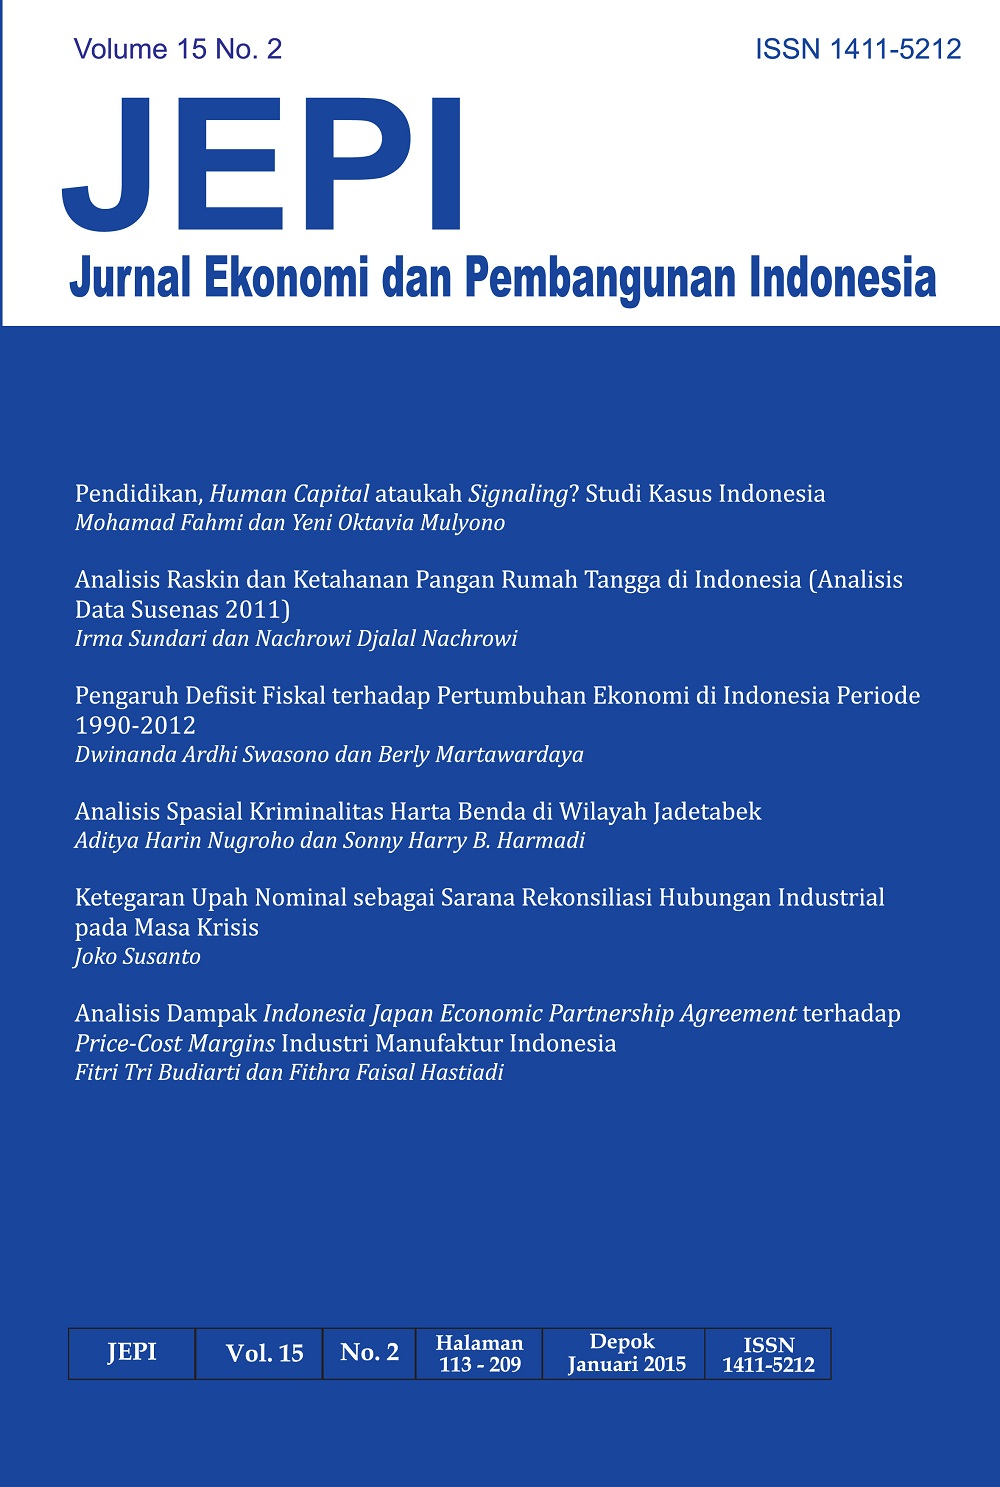 JEPI Jurnal Ekonomi Dan Pembangunan Indonesia Volume 15 No.2 Januari 2015